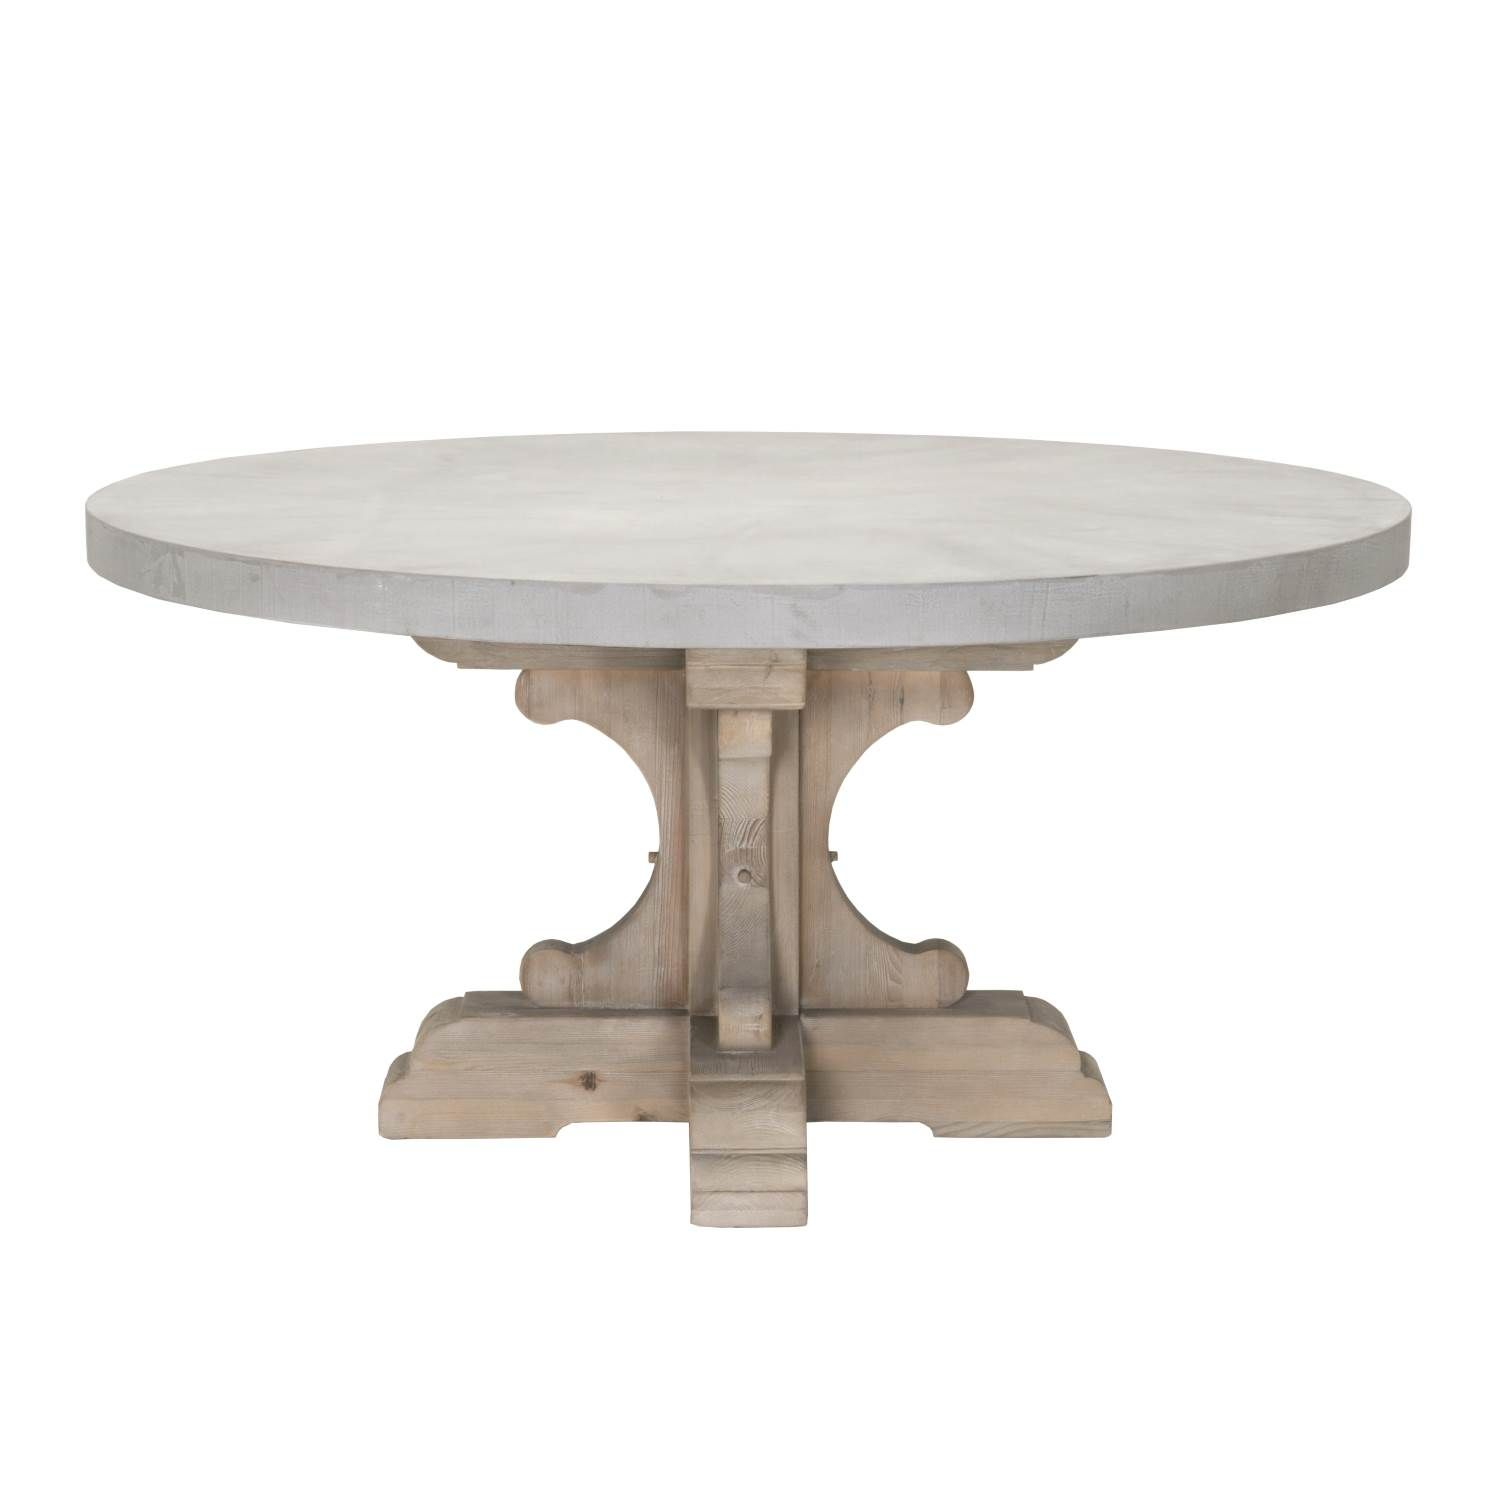 Bastille Round Dining Table Top Dining Table Round Dining Table Round Concrete Dining Table